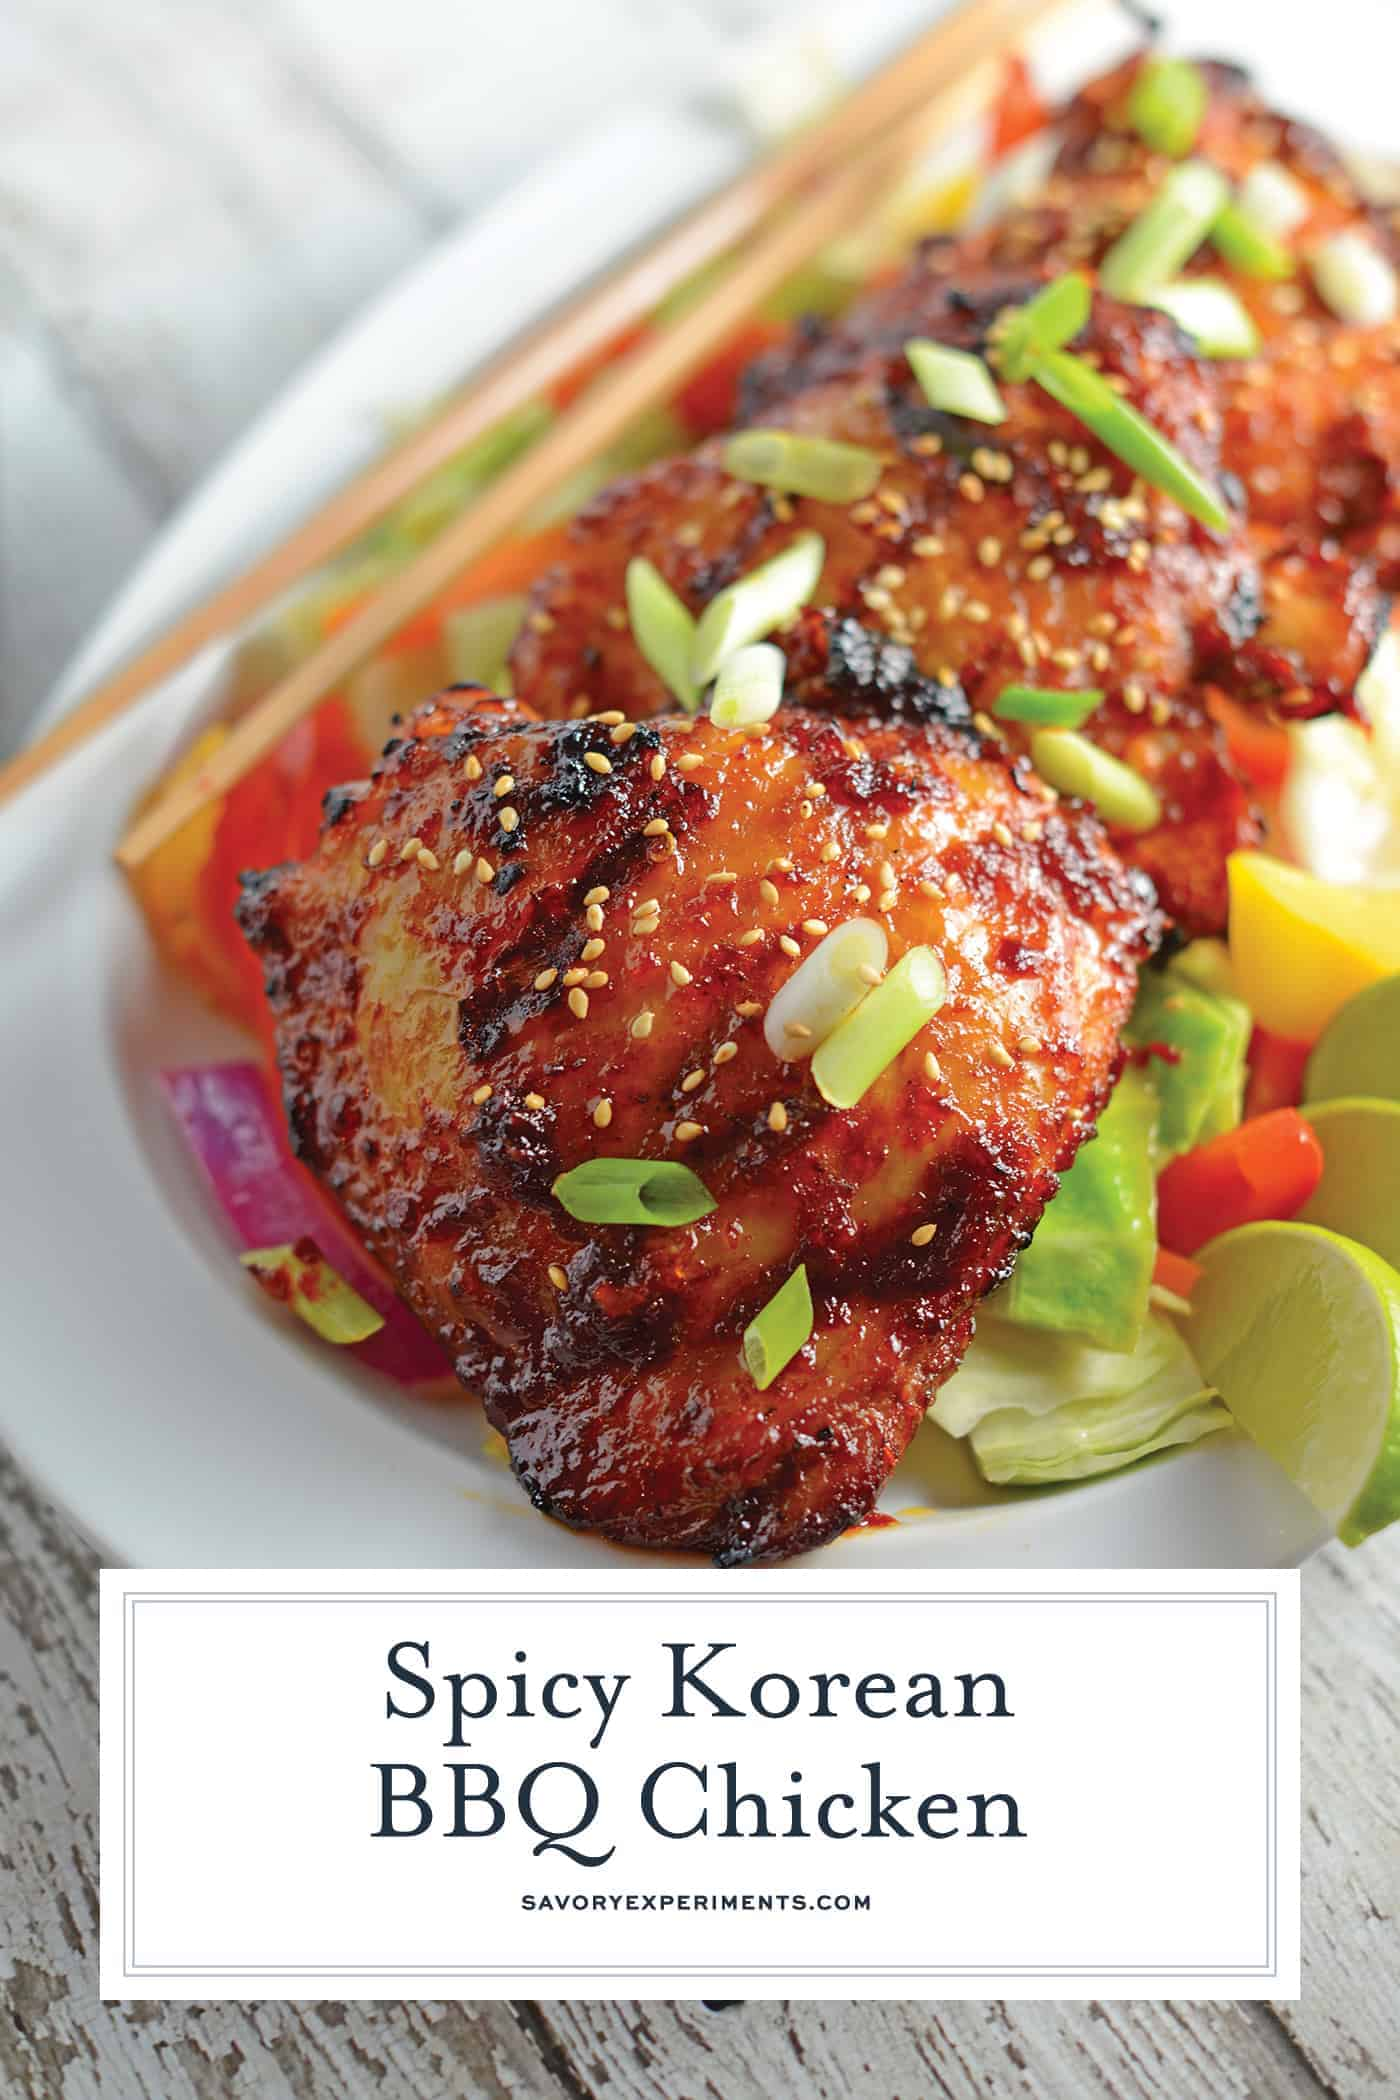 Spicy Korean BBQ Chicken is a spicy chicken marinade using chile garlic sauce, dark soy sauce and apple to balance the sweet. Use on any type of chicken and grill to perfection.#grilledchicken #koreanchicken #bbqchicken www.savoryexperiments.com